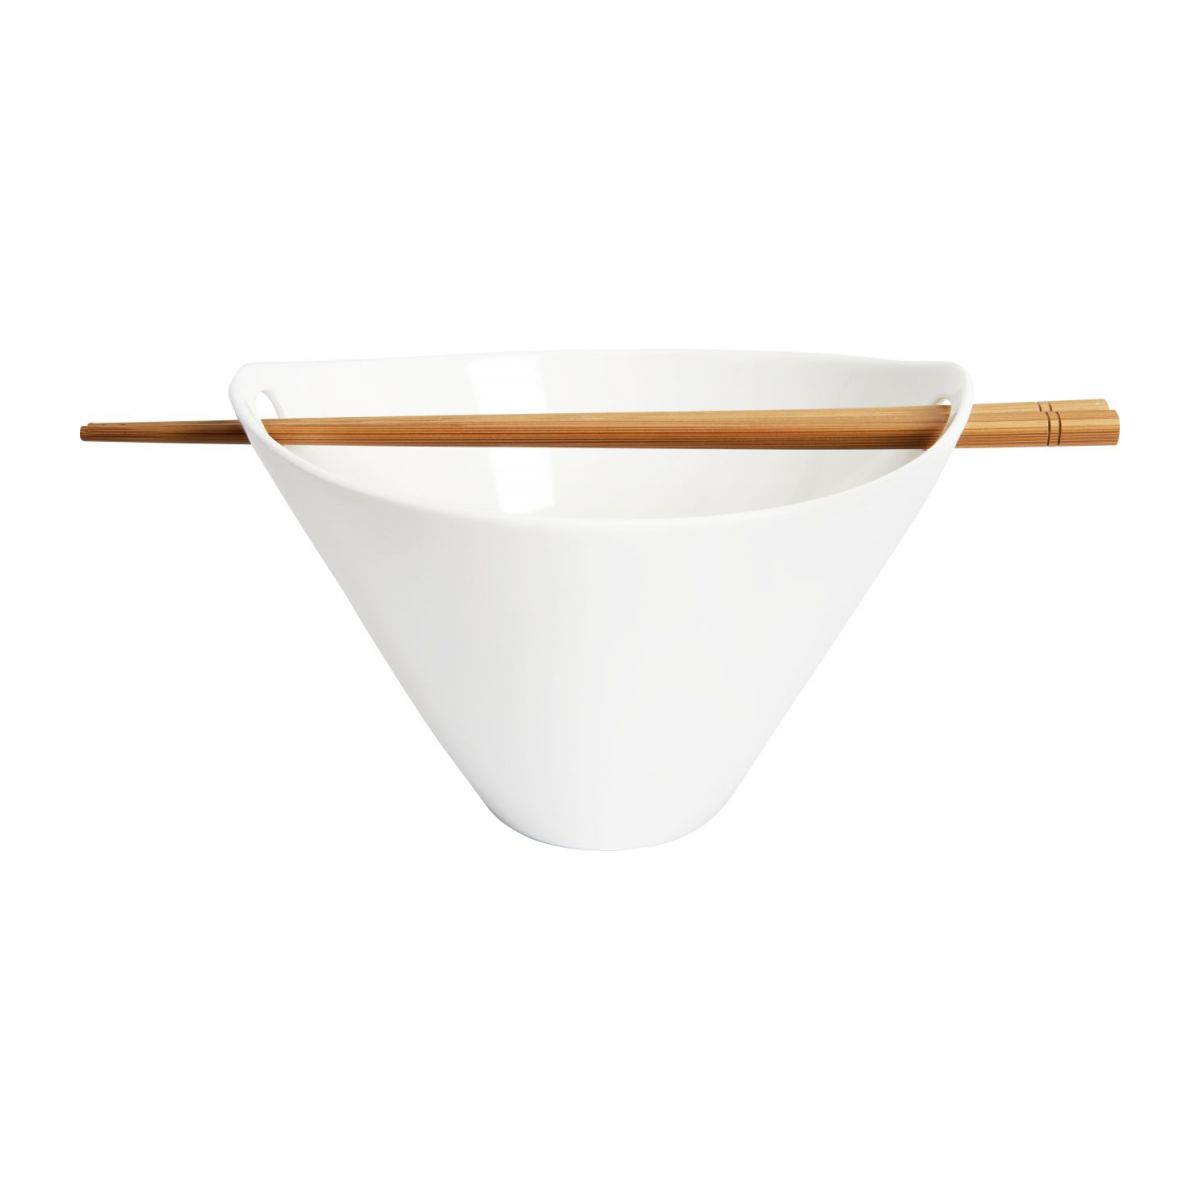 Bowl with chopsticks n°3